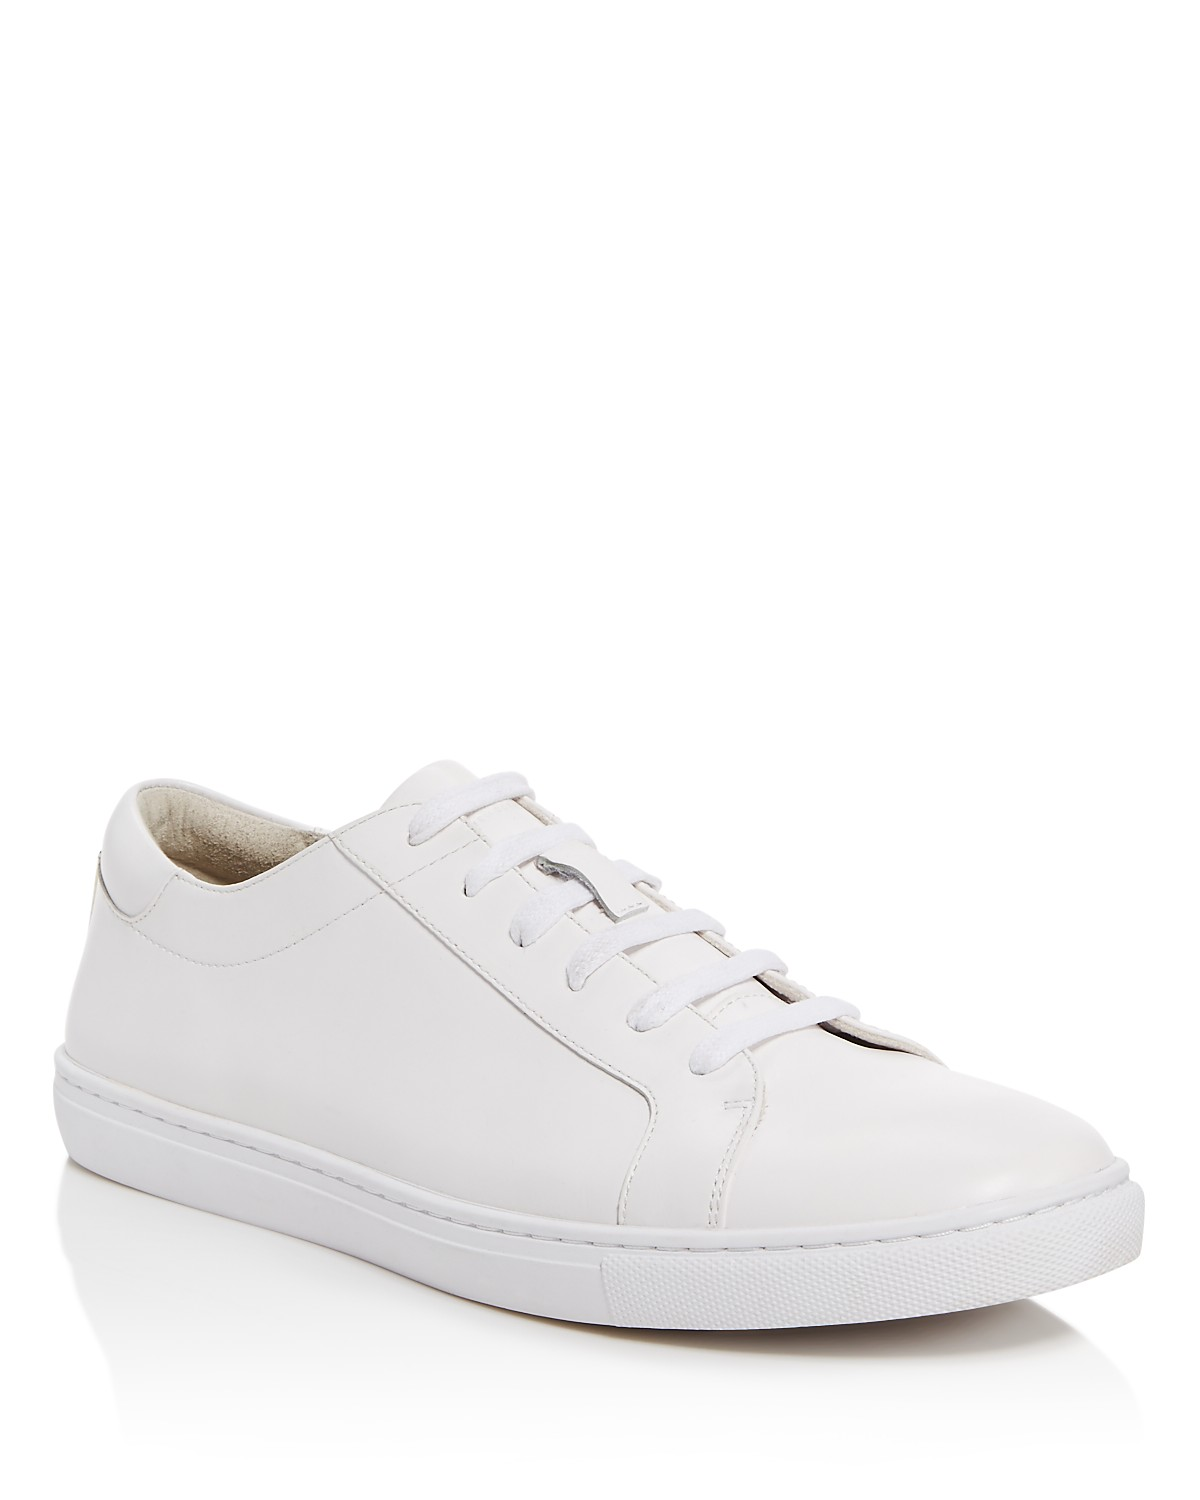 Kenneth Cole Men's Kam Leather Lace Up Sneakers gXmYsFA